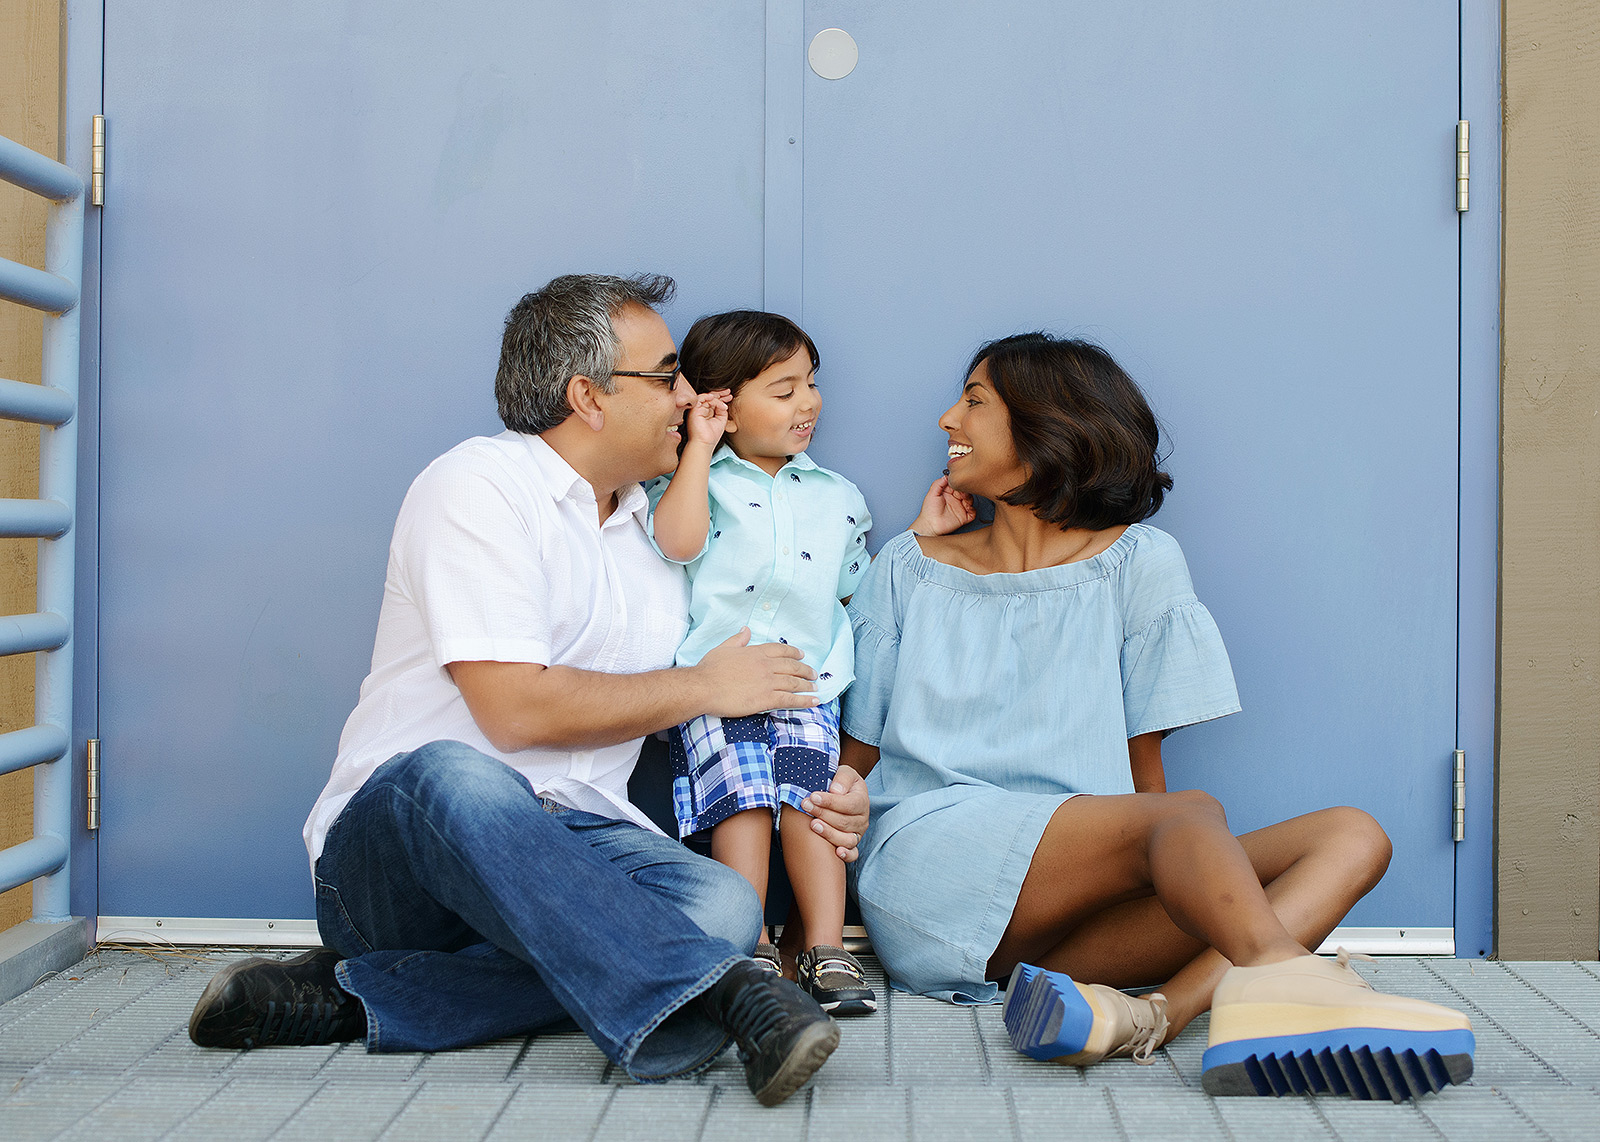 Dad, mom and son smile at each other in front of baby blue door at Folsom Powerhouse